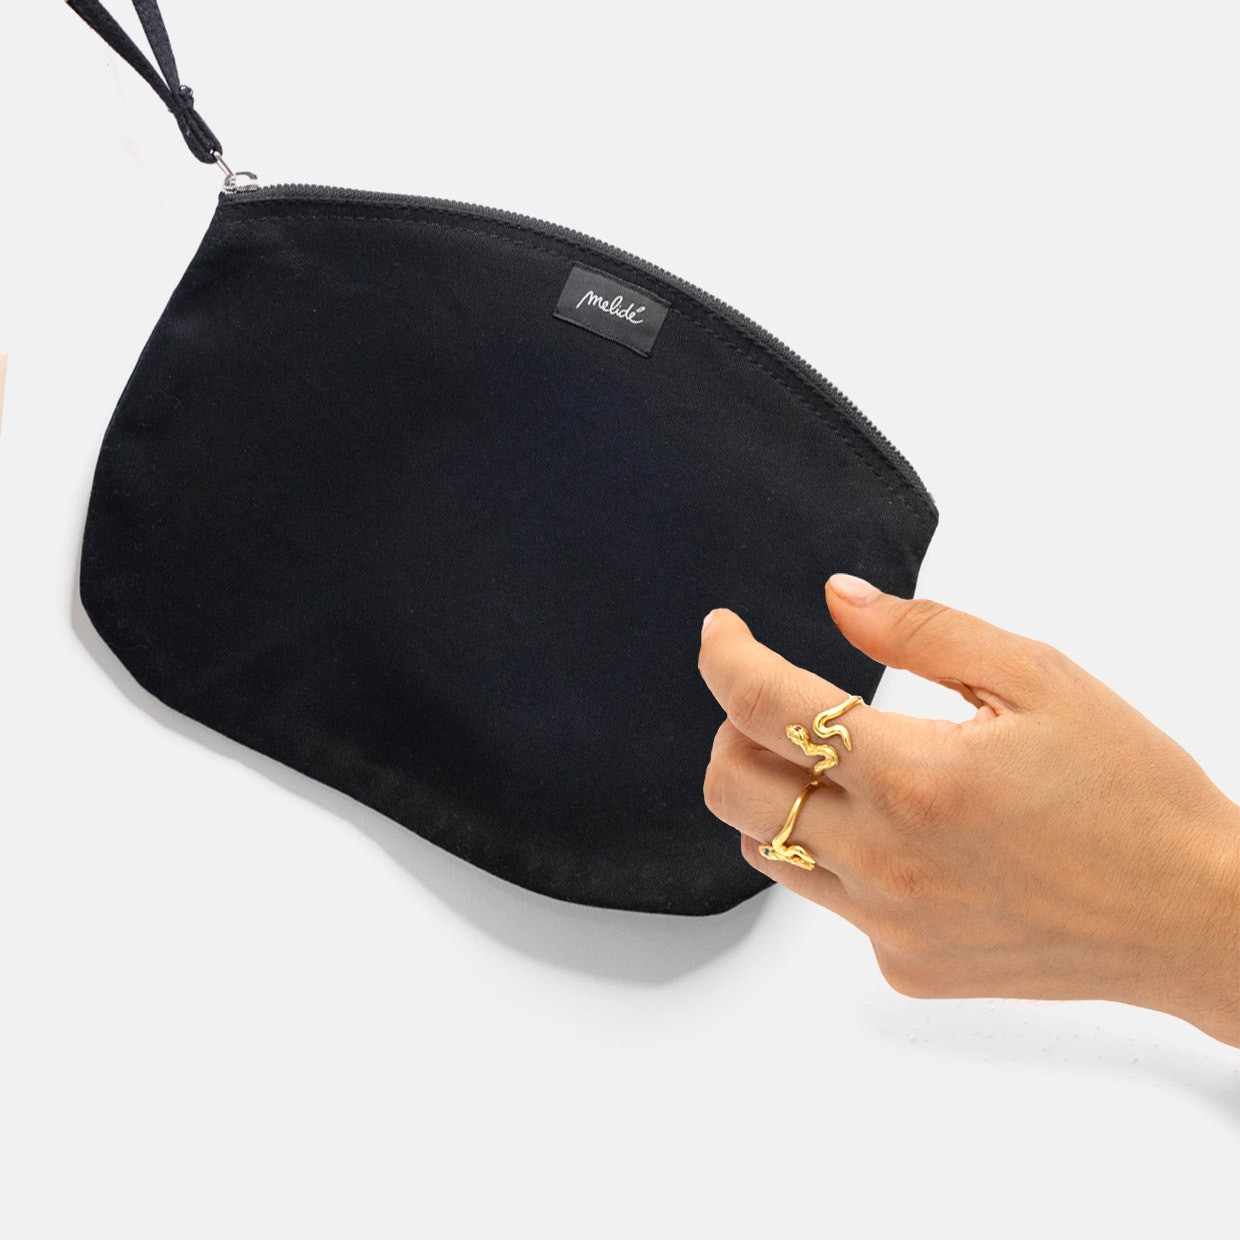 The NOT TOO MUCH zipped pouch kit